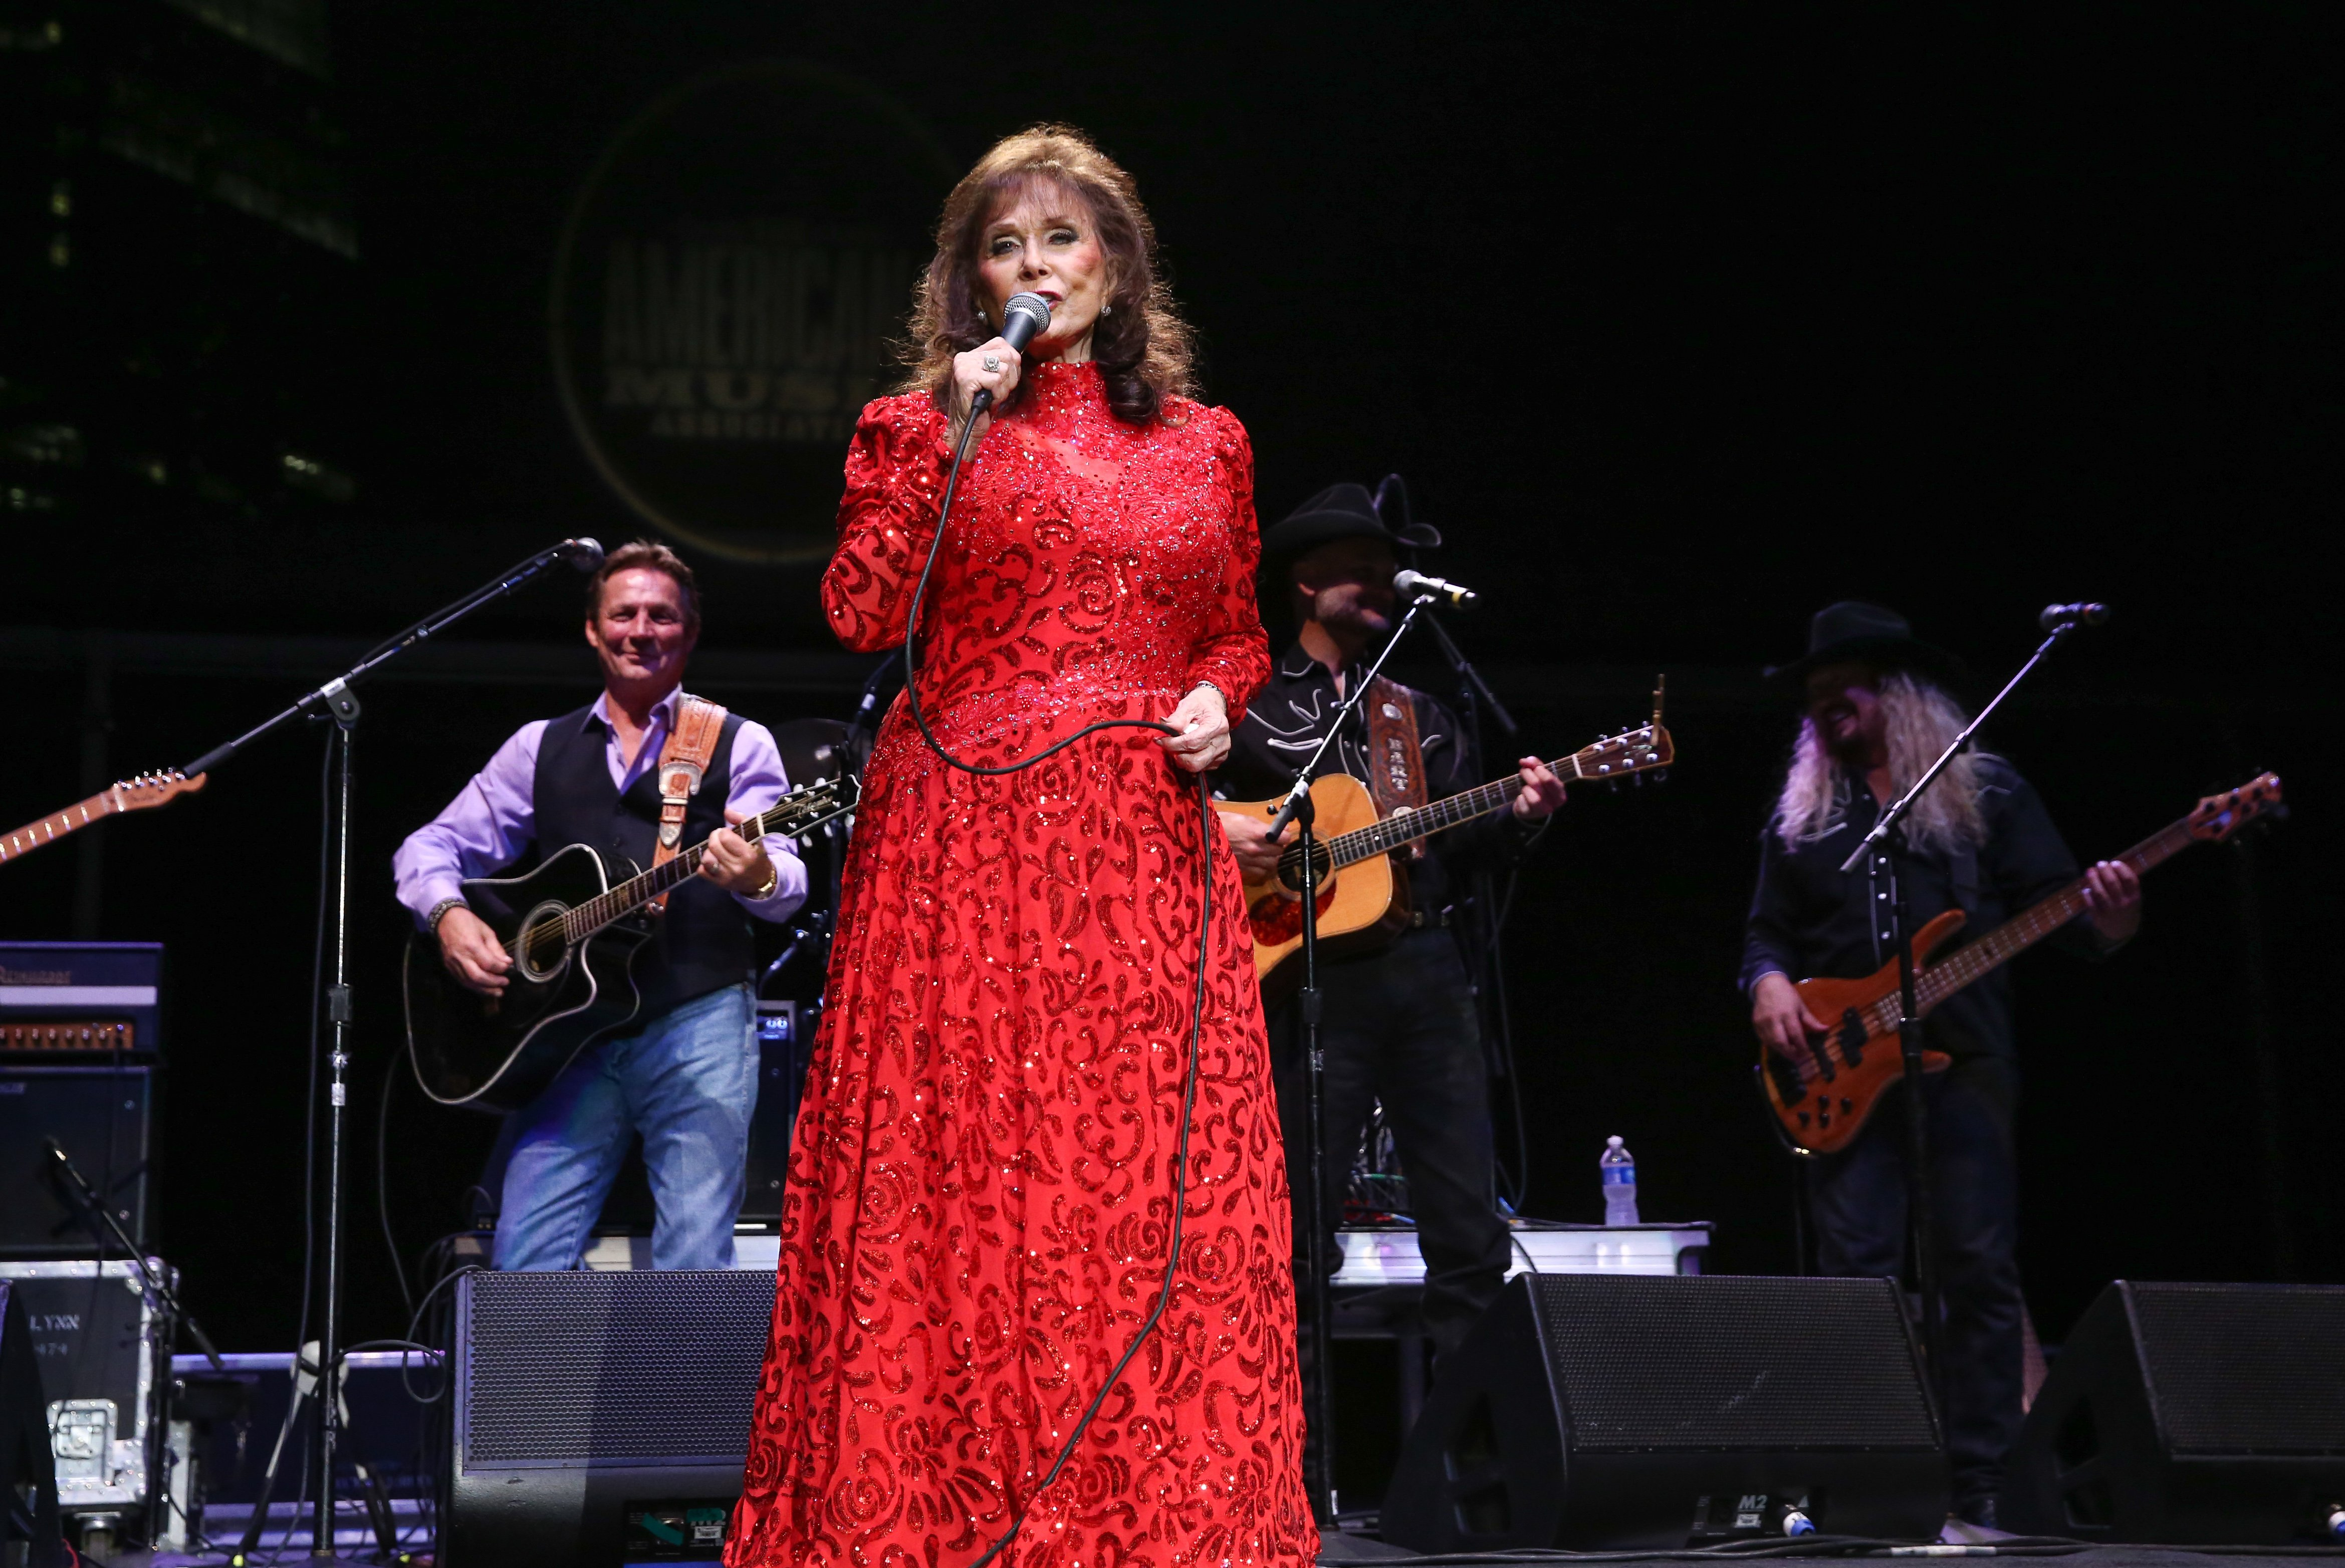 Loretta Lynn performs during the 16th Annual Americana Music Festival & Conference at Ascend Amphitheater on September 19, 2015 in Nashville